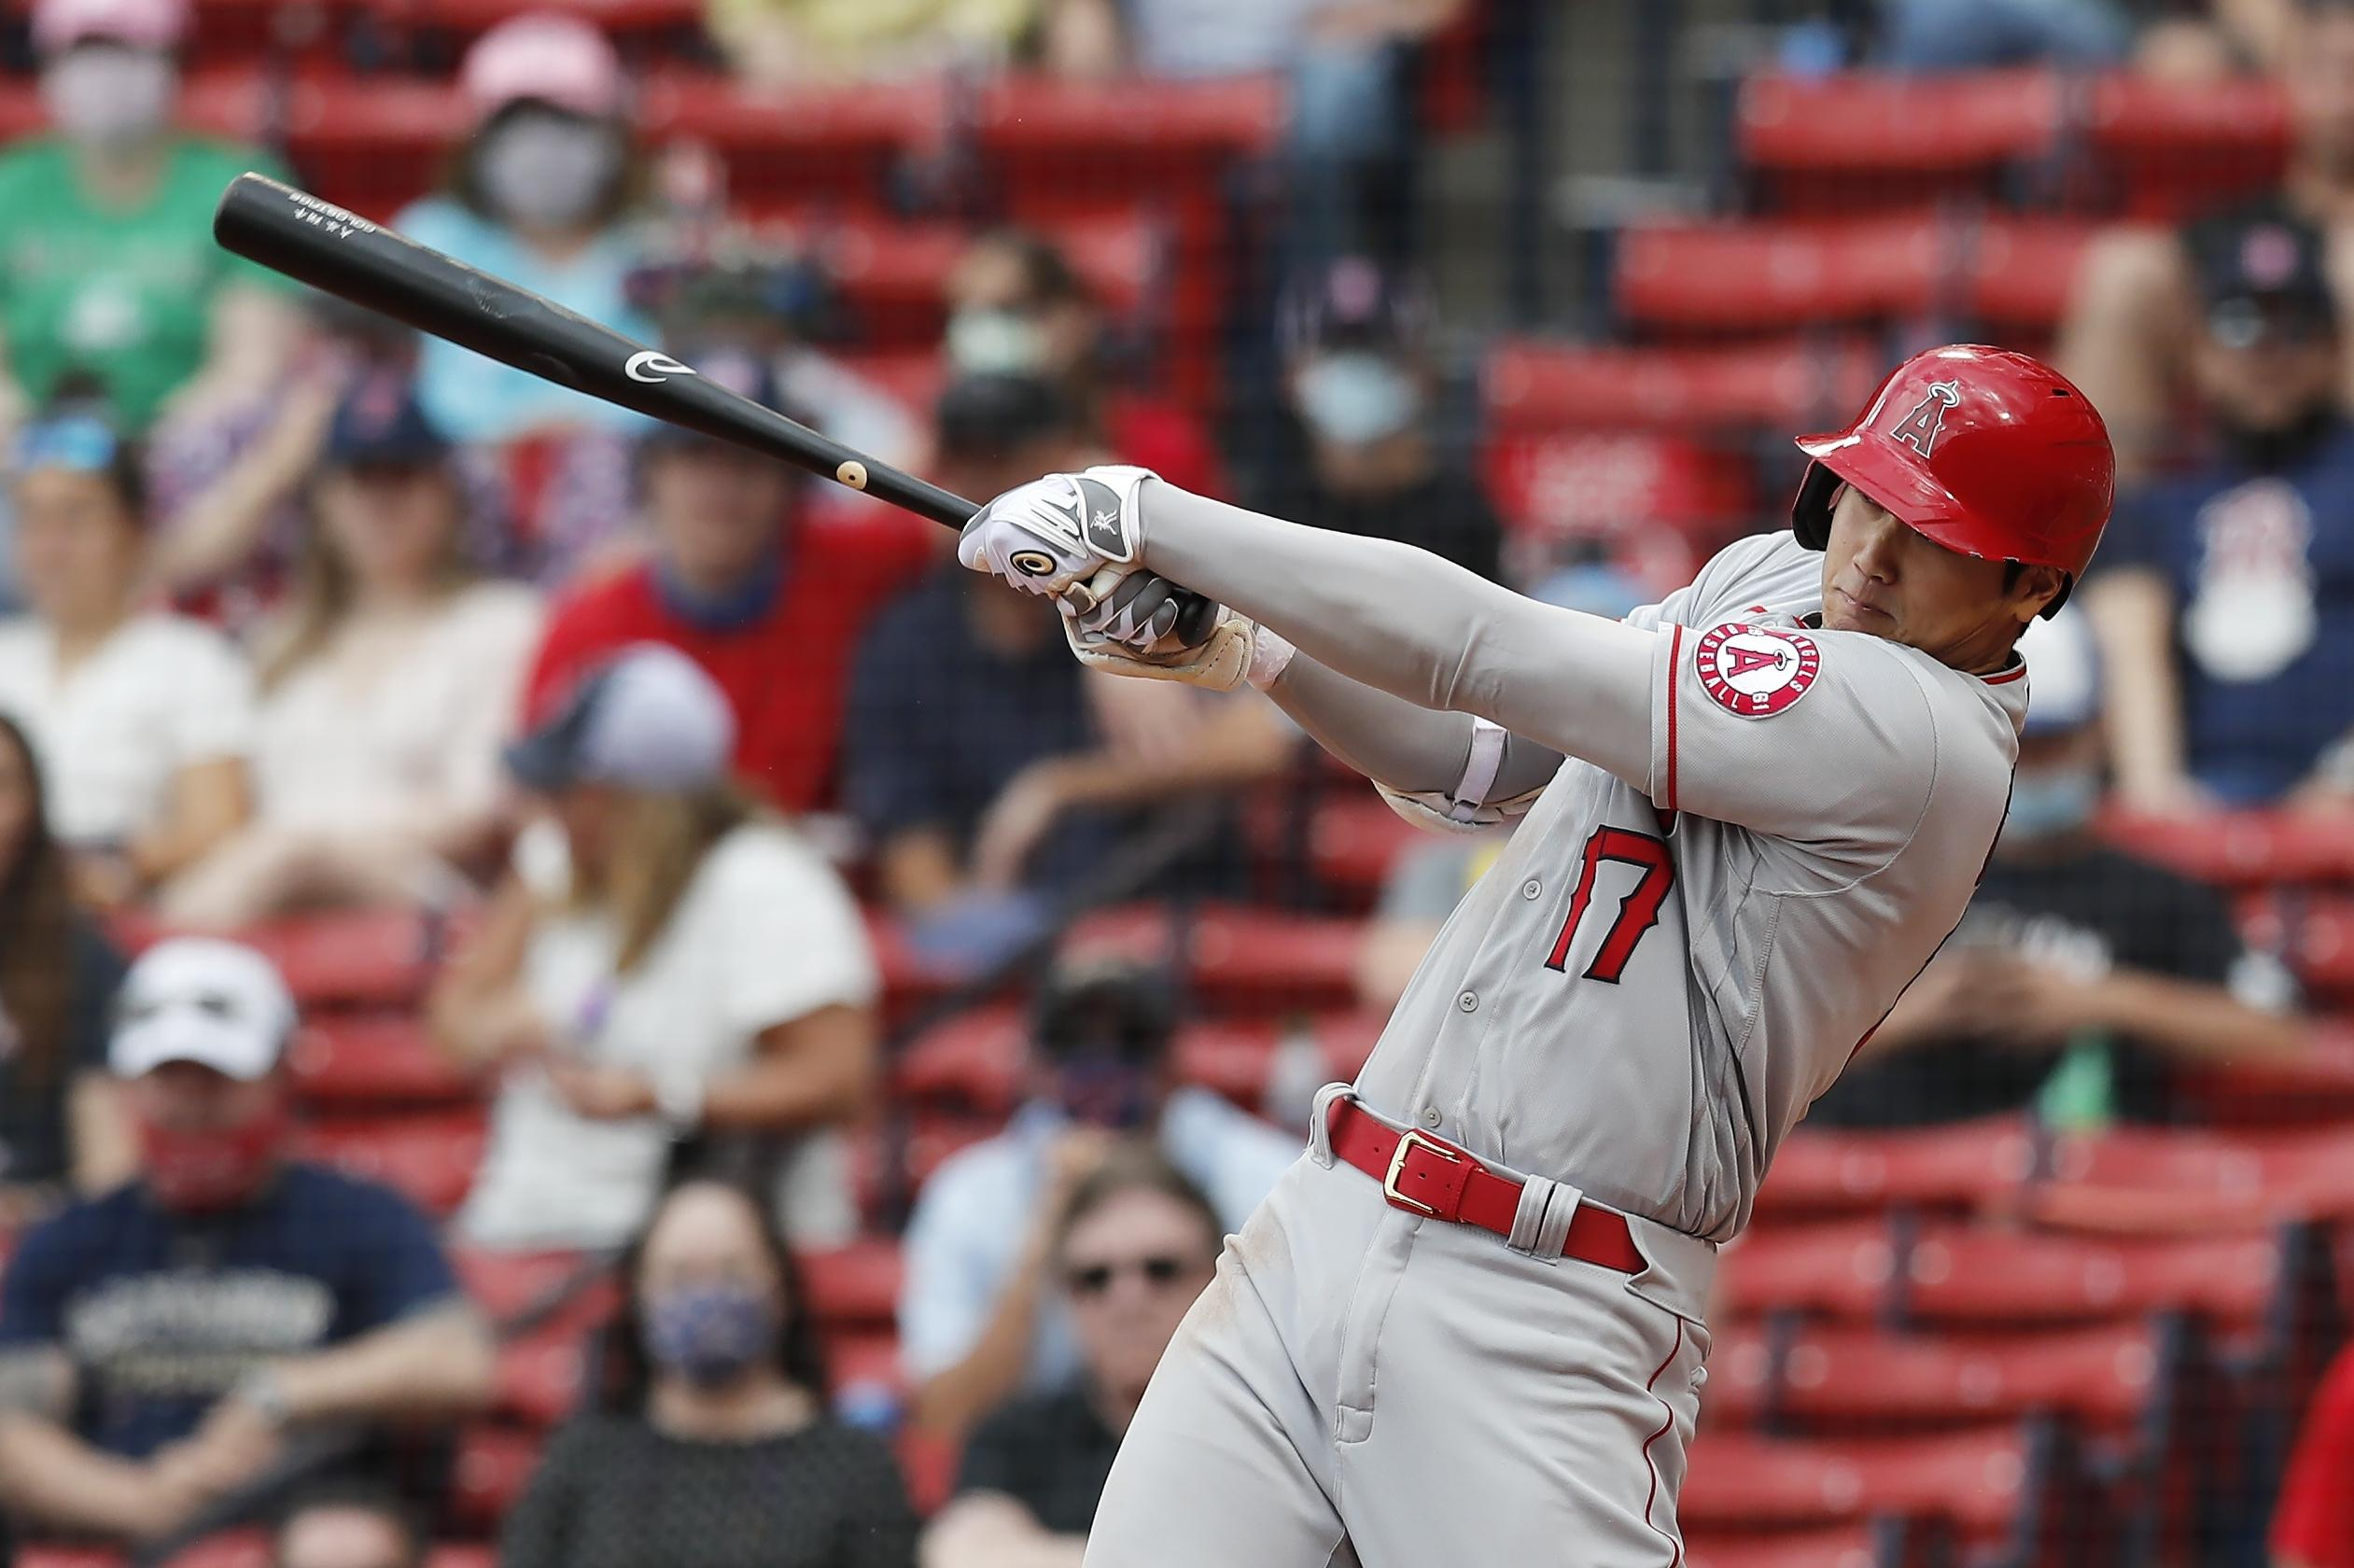 Ohtani's 12th homer lifts Angels over Red Sox 6-5